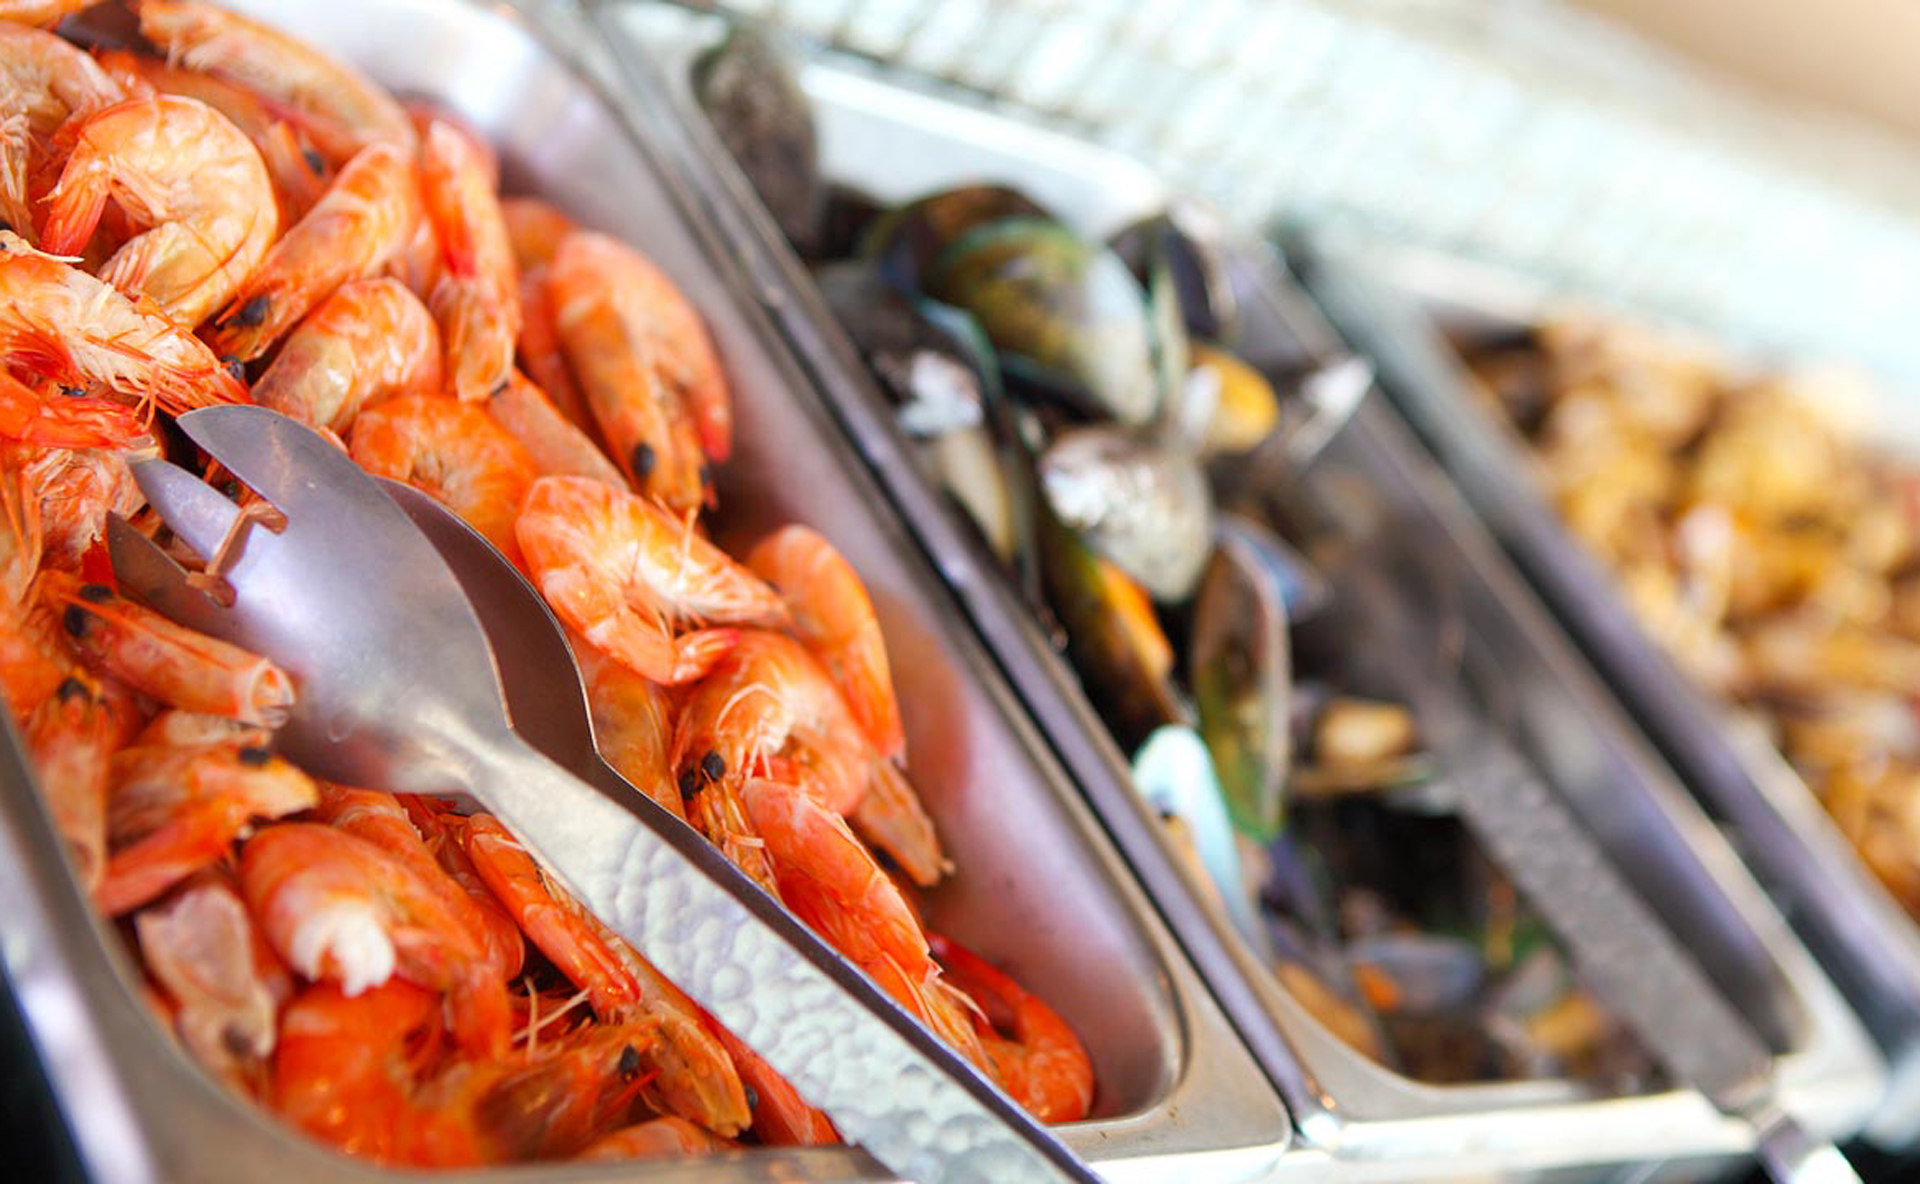 Friday Seafood Buffet - 4:30 - 8:00 pm